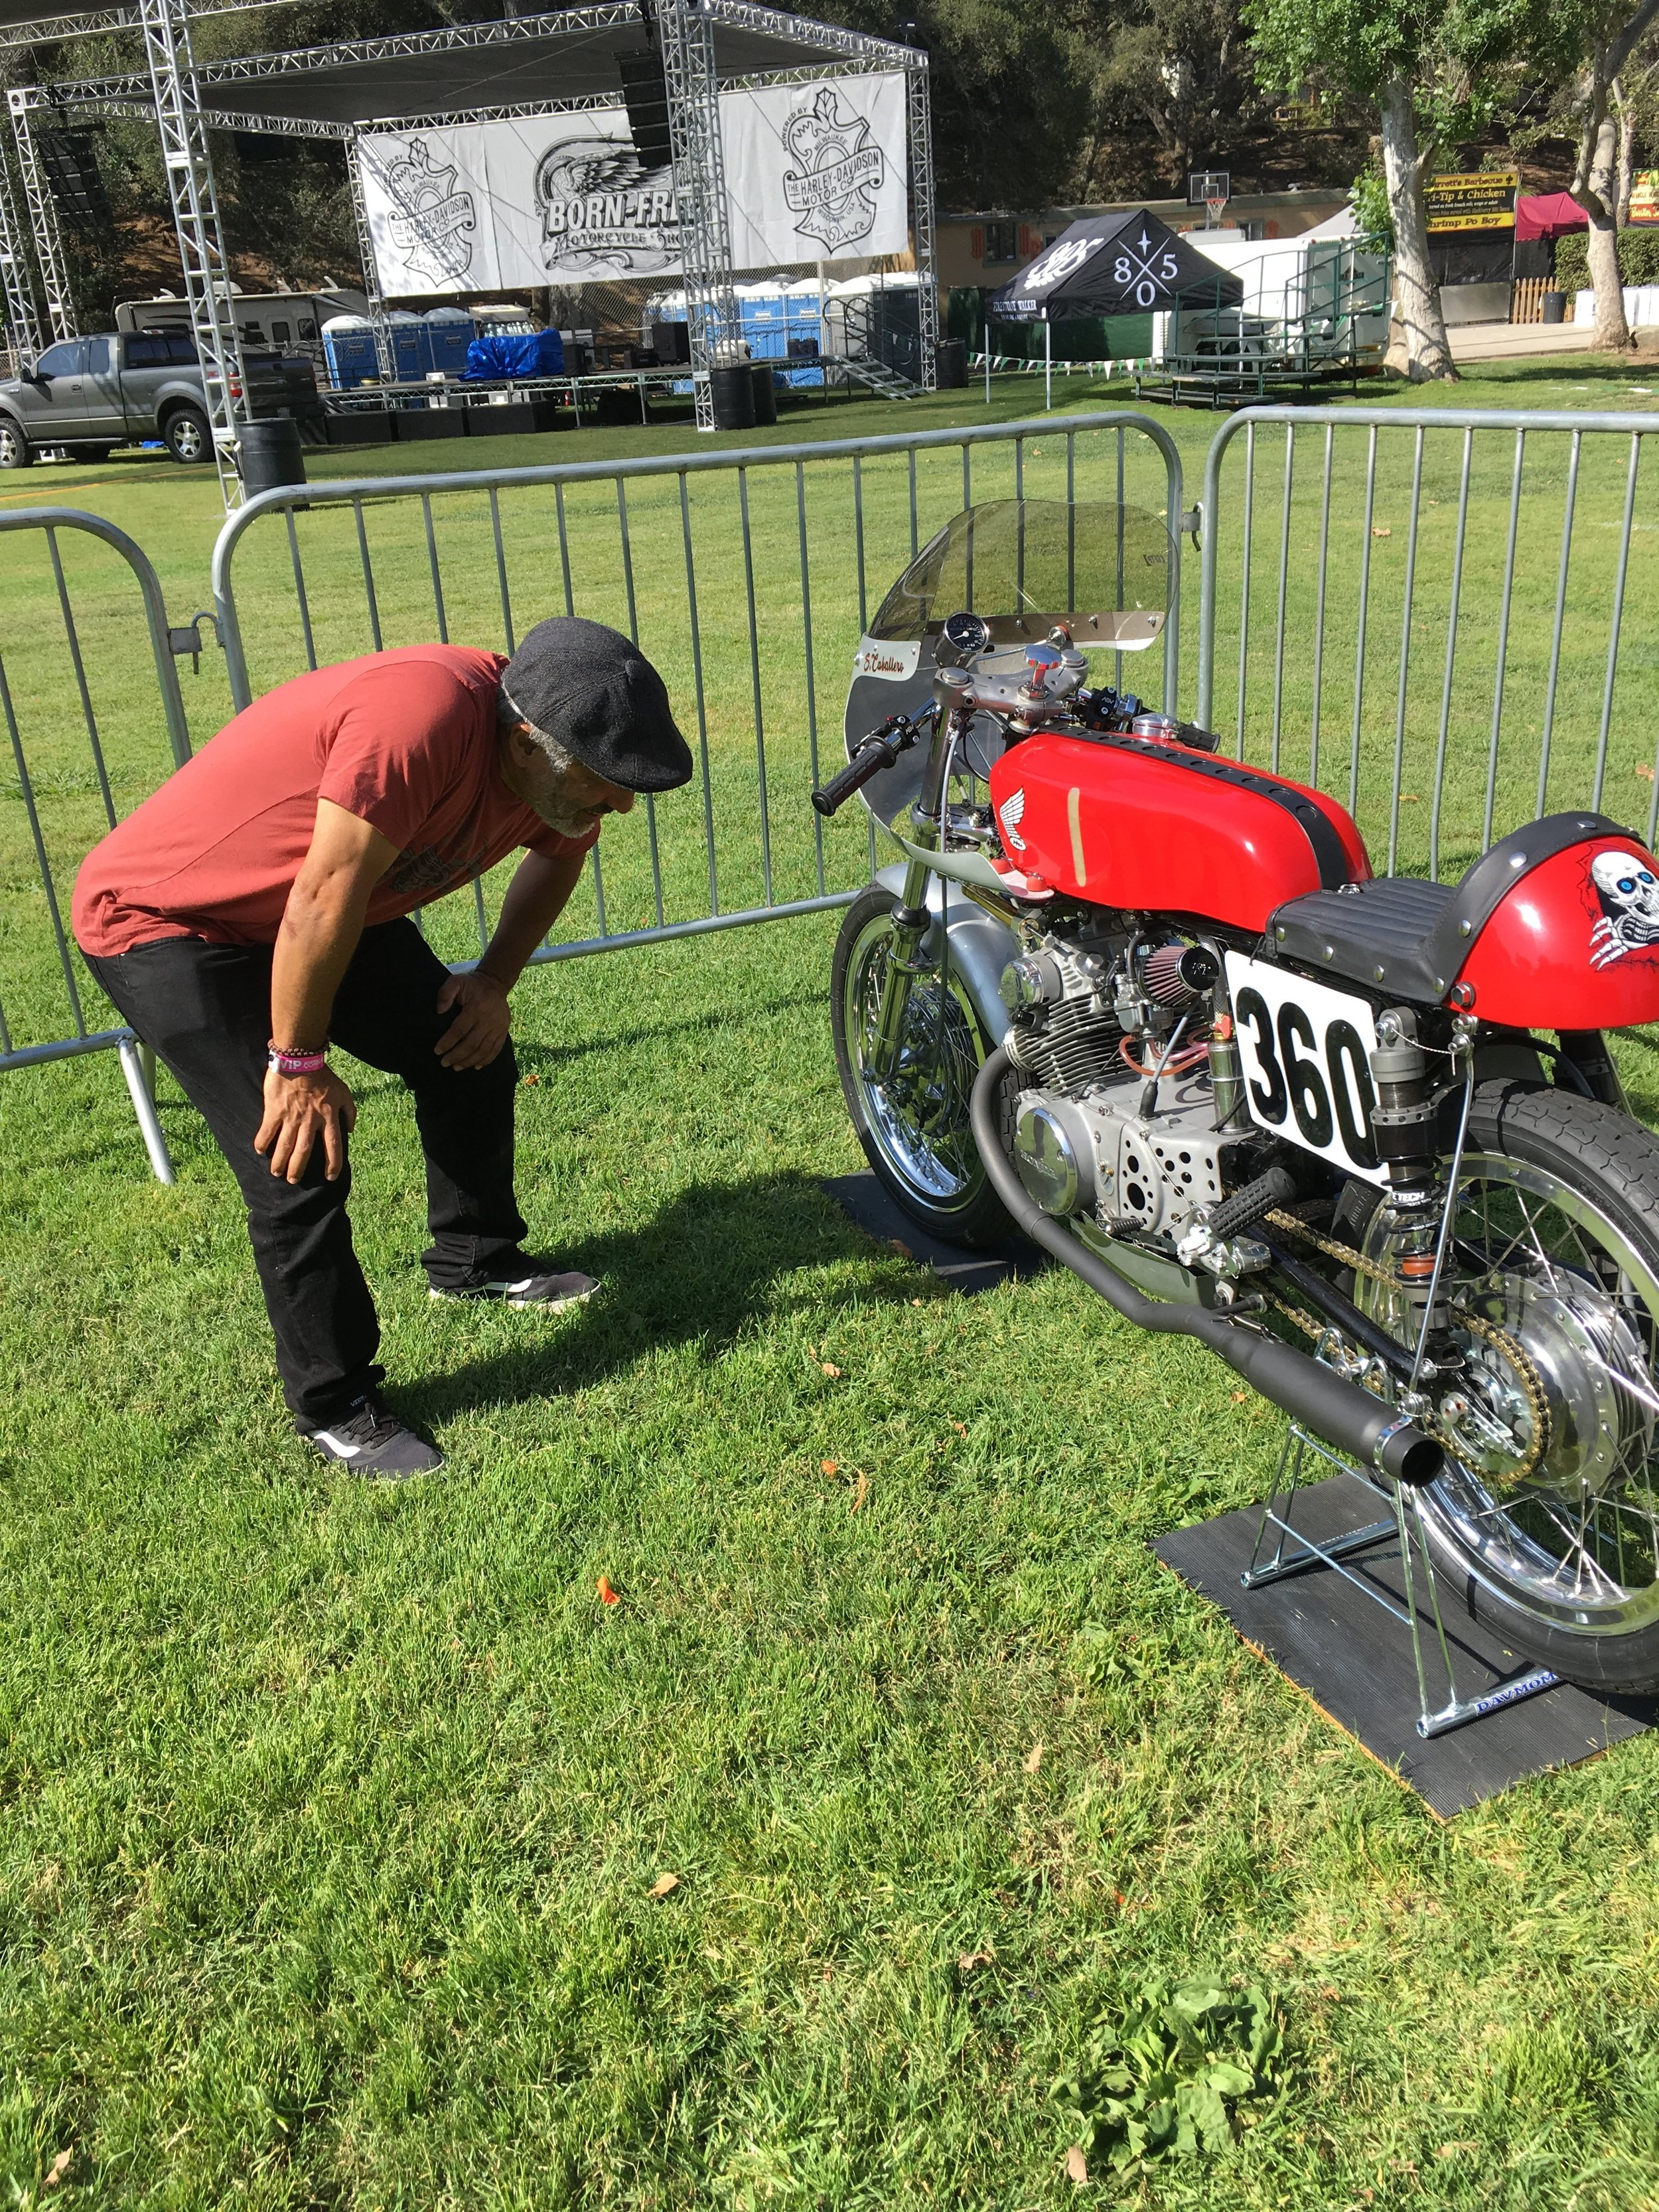 Steve checking out the bike on arrival at the Born Free show. He has seen it at three different shows, and each time there were changes made.